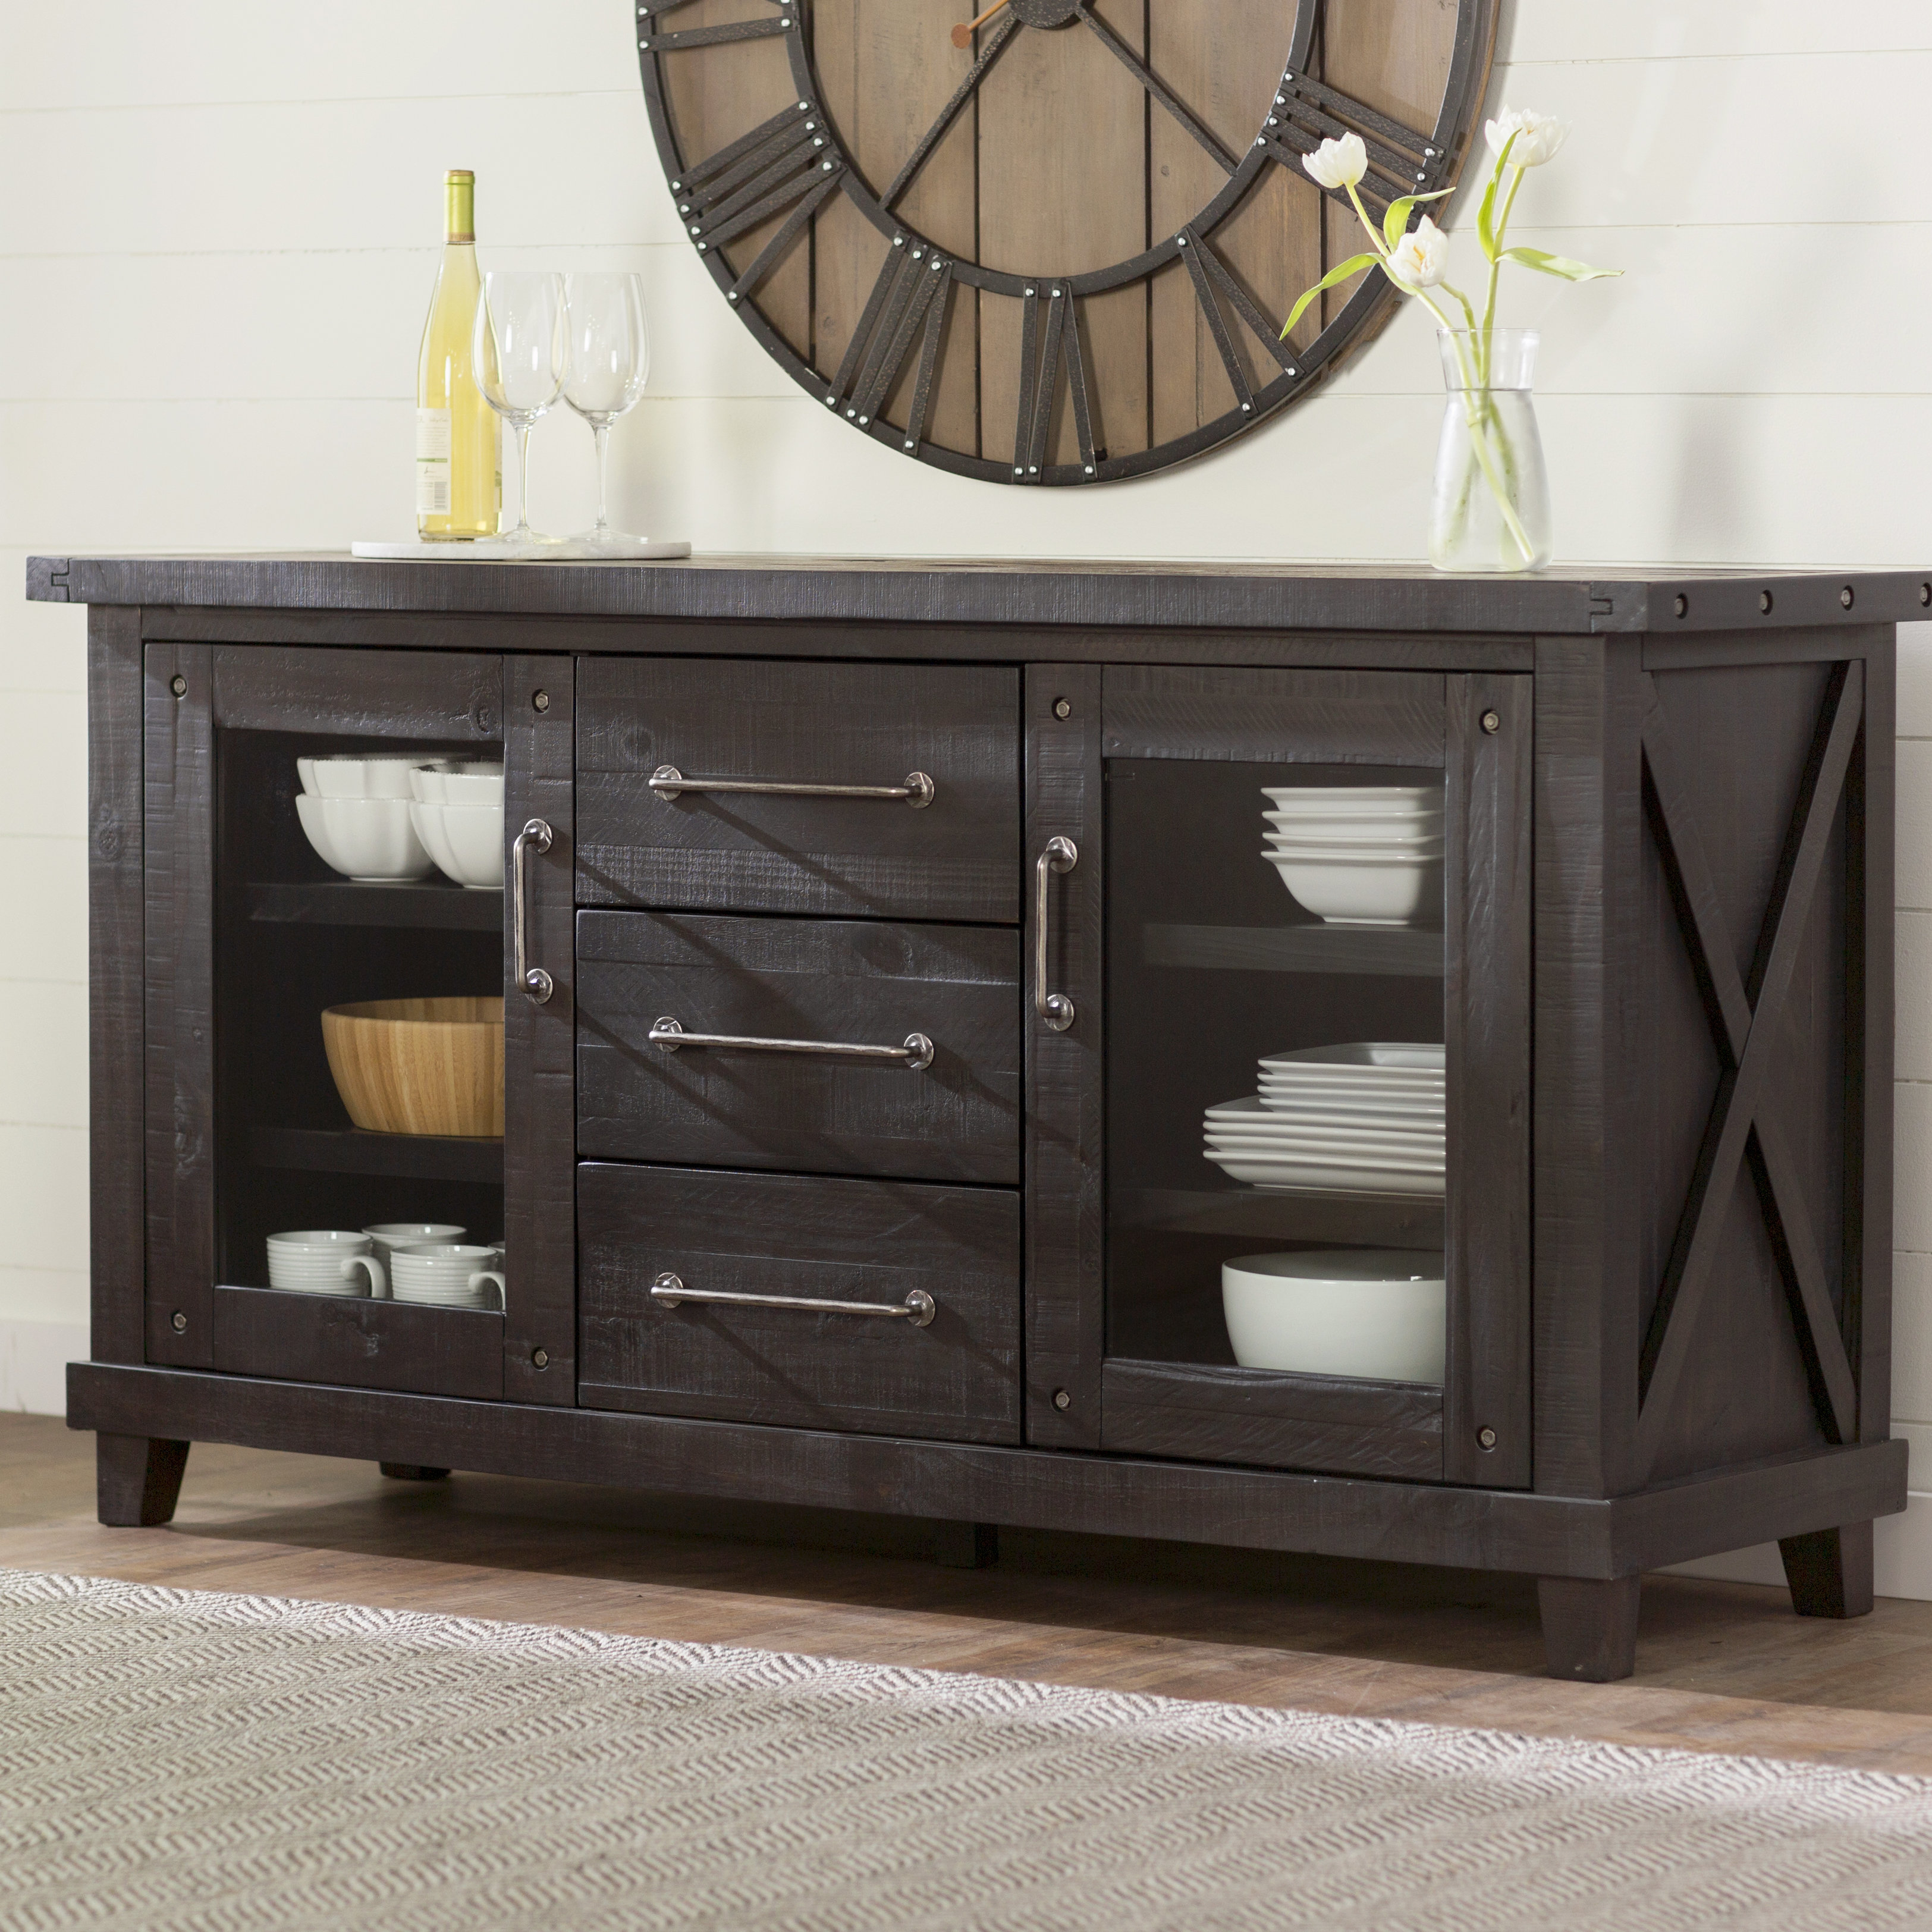 Langsa Sideboard With Regard To Newest Alegre Sideboards (#13 of 20)